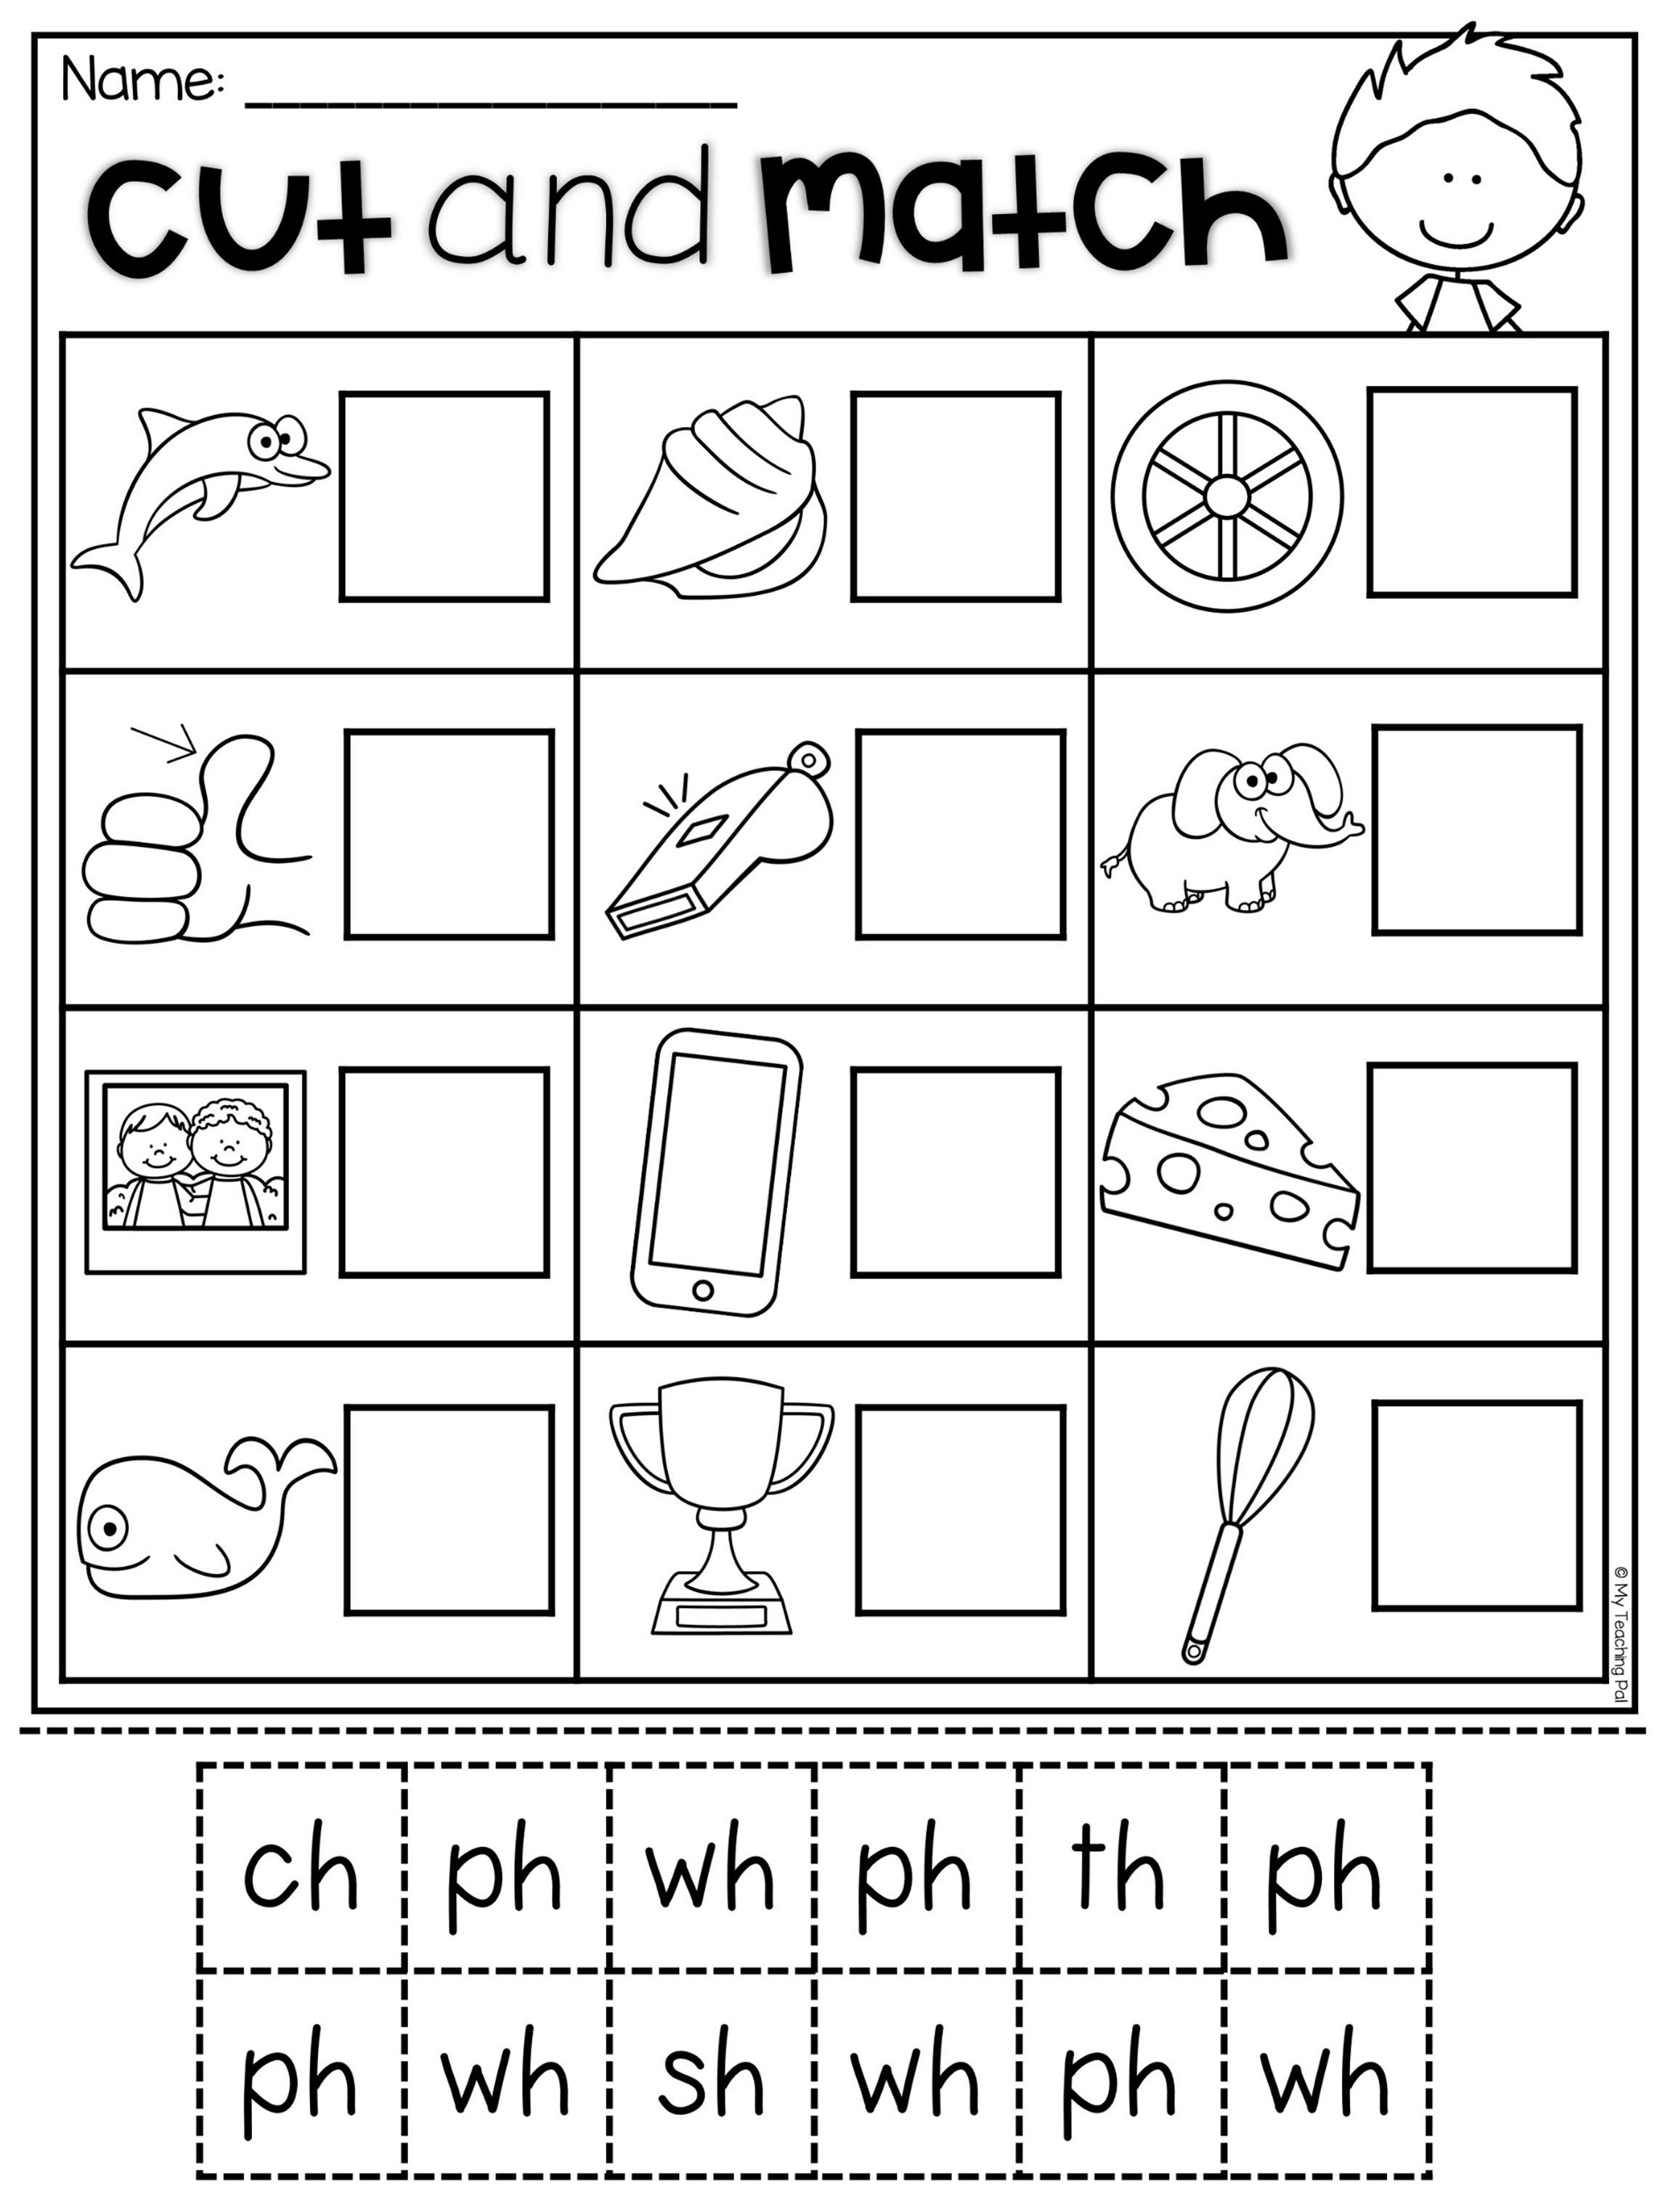 Digraph Match Worksheet For Ch Sh Th Ph And Wh This